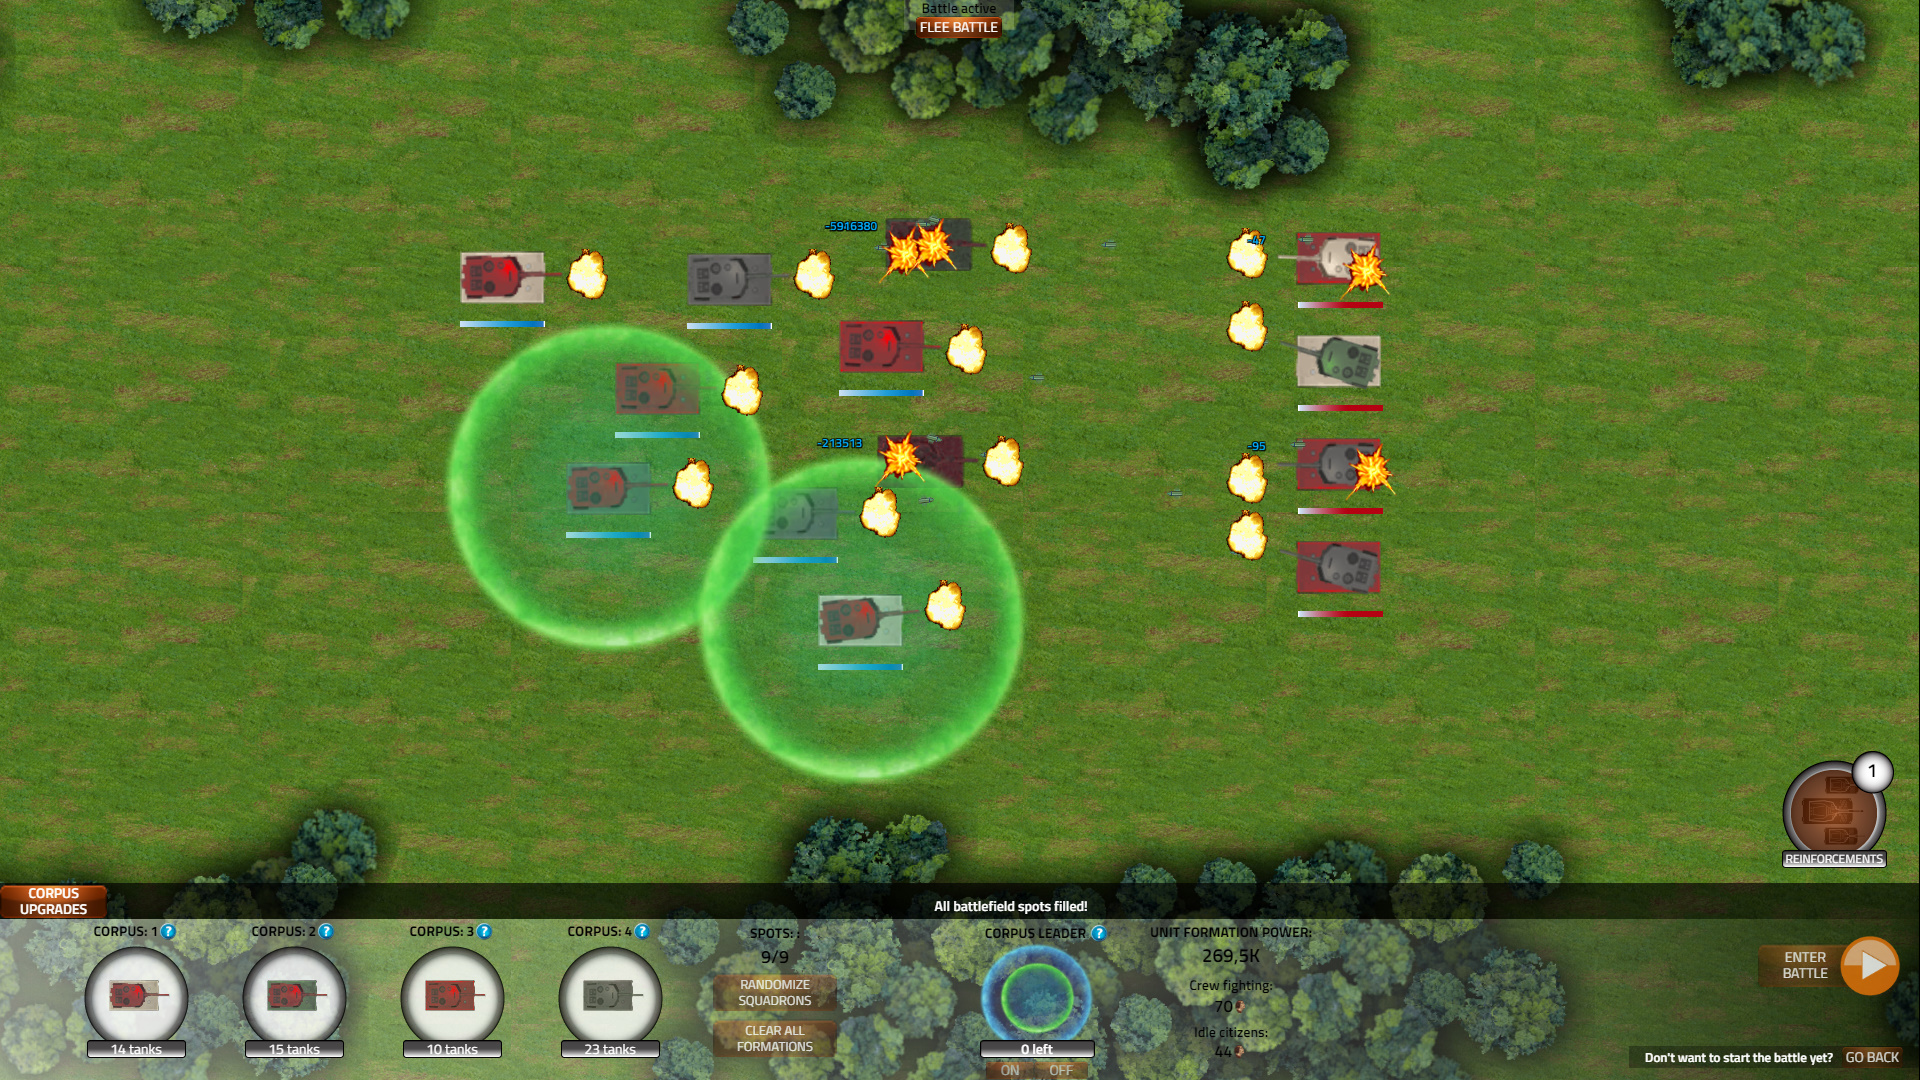 combat_screenshot